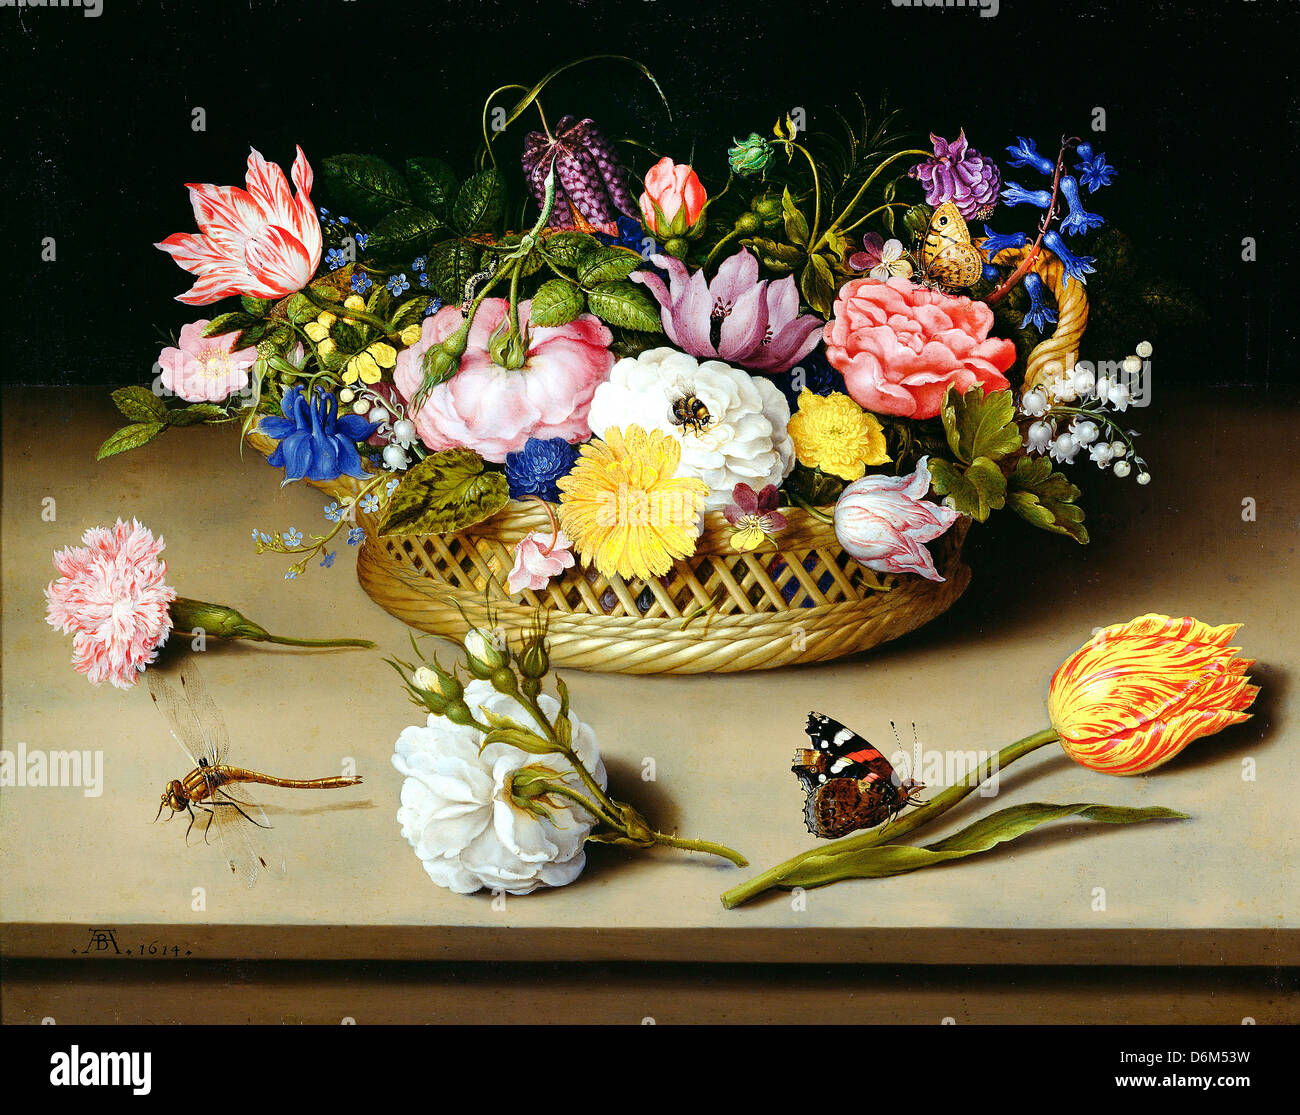 Ambrosius Stock Photos Images Alamy Diagram Of Rose Flower Crosssection Drawing Illustration Getty Bosschaerts The Elder Still Life 1614 Oil On Copper J